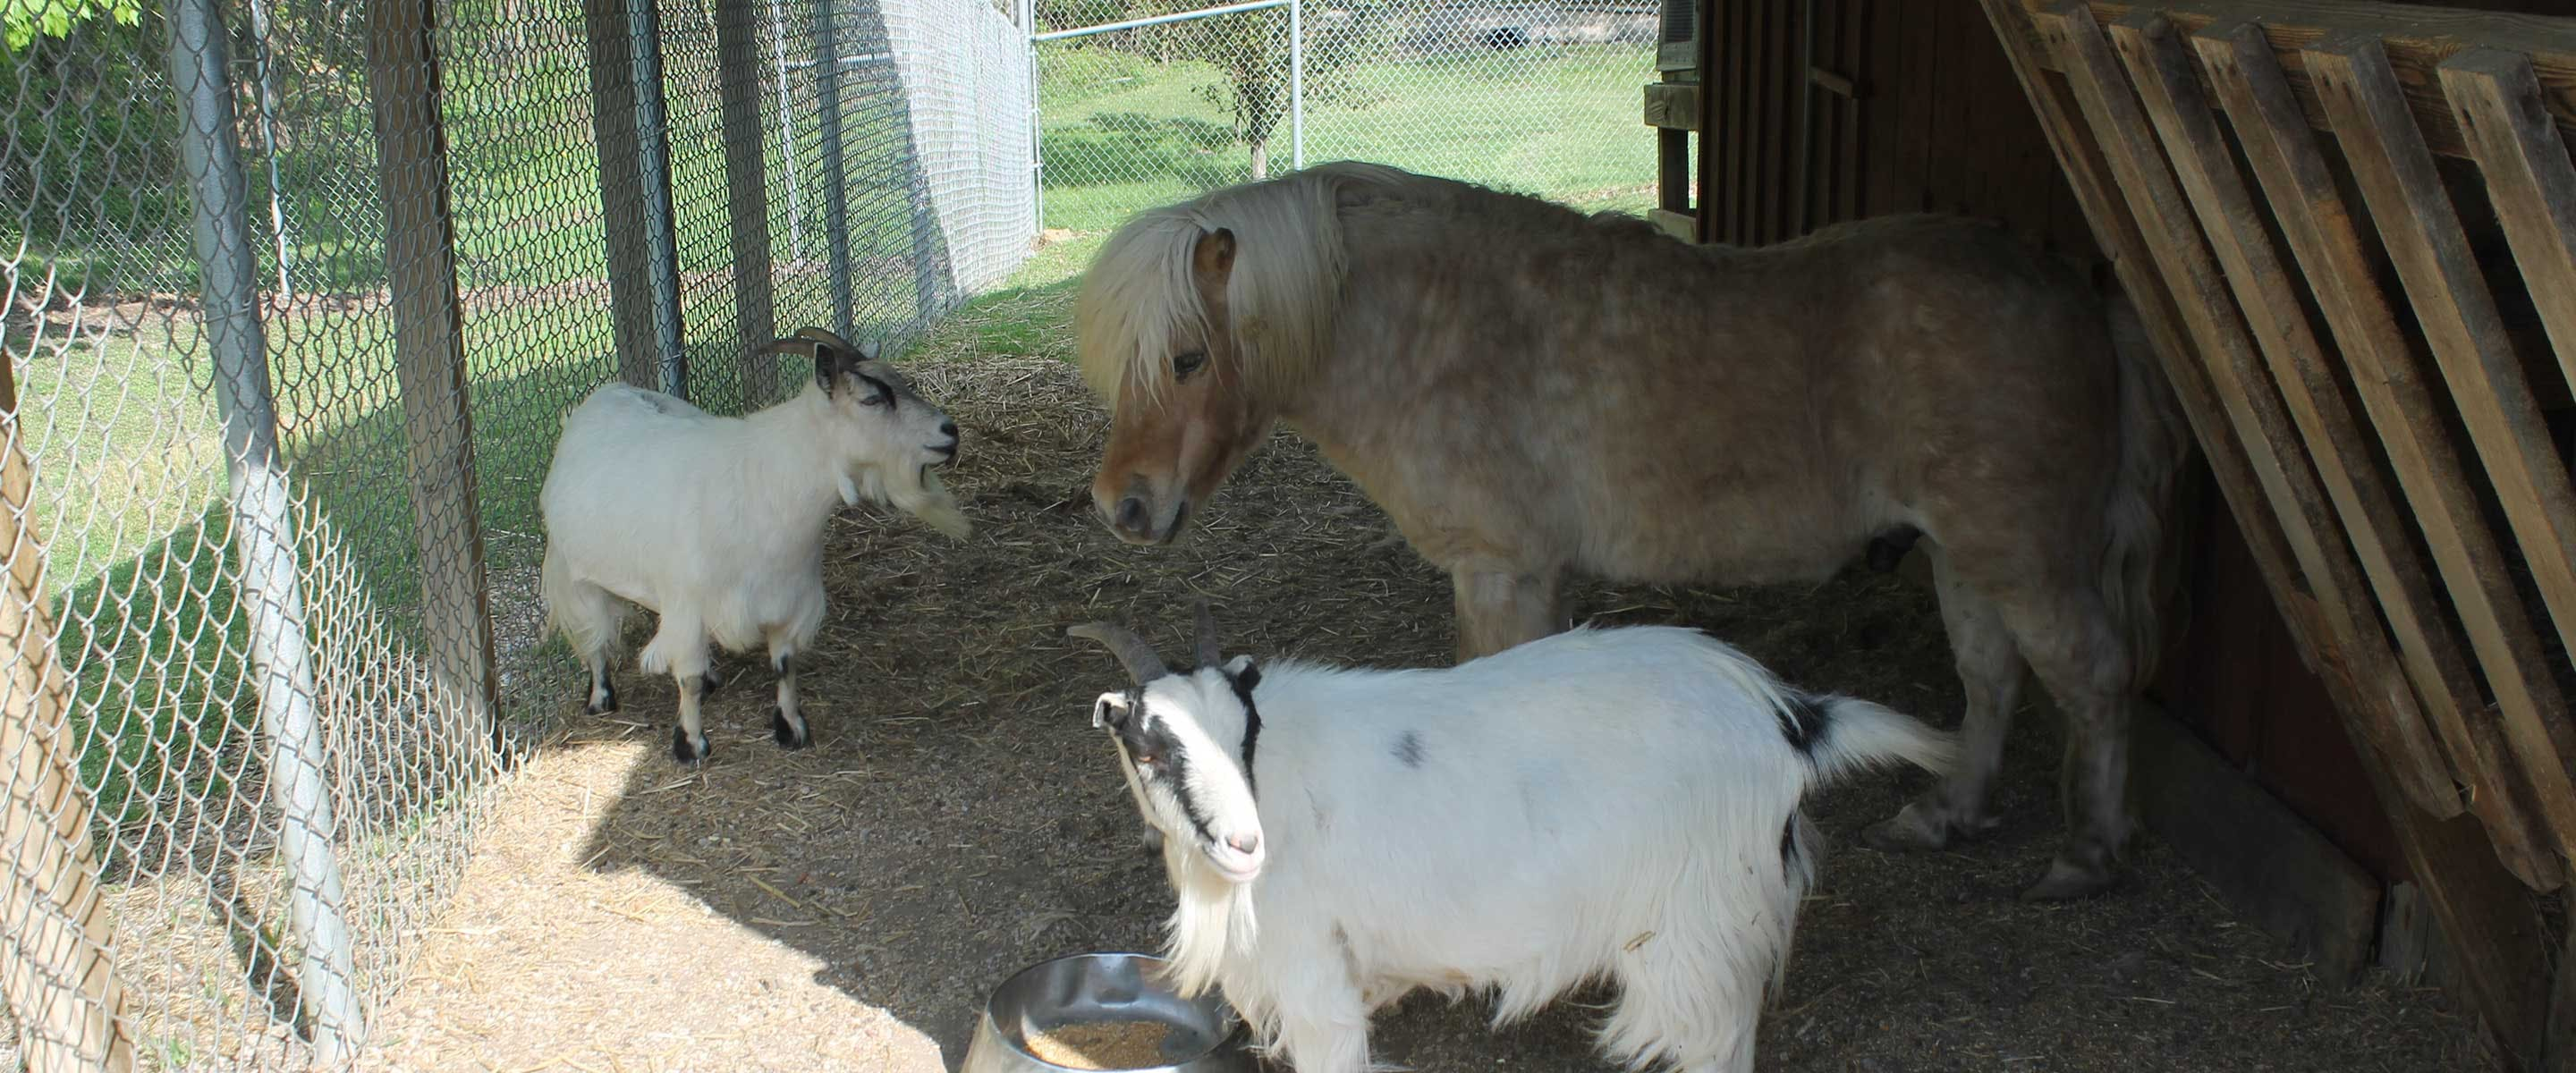 horse, goat, and more for petting at the petting zoo